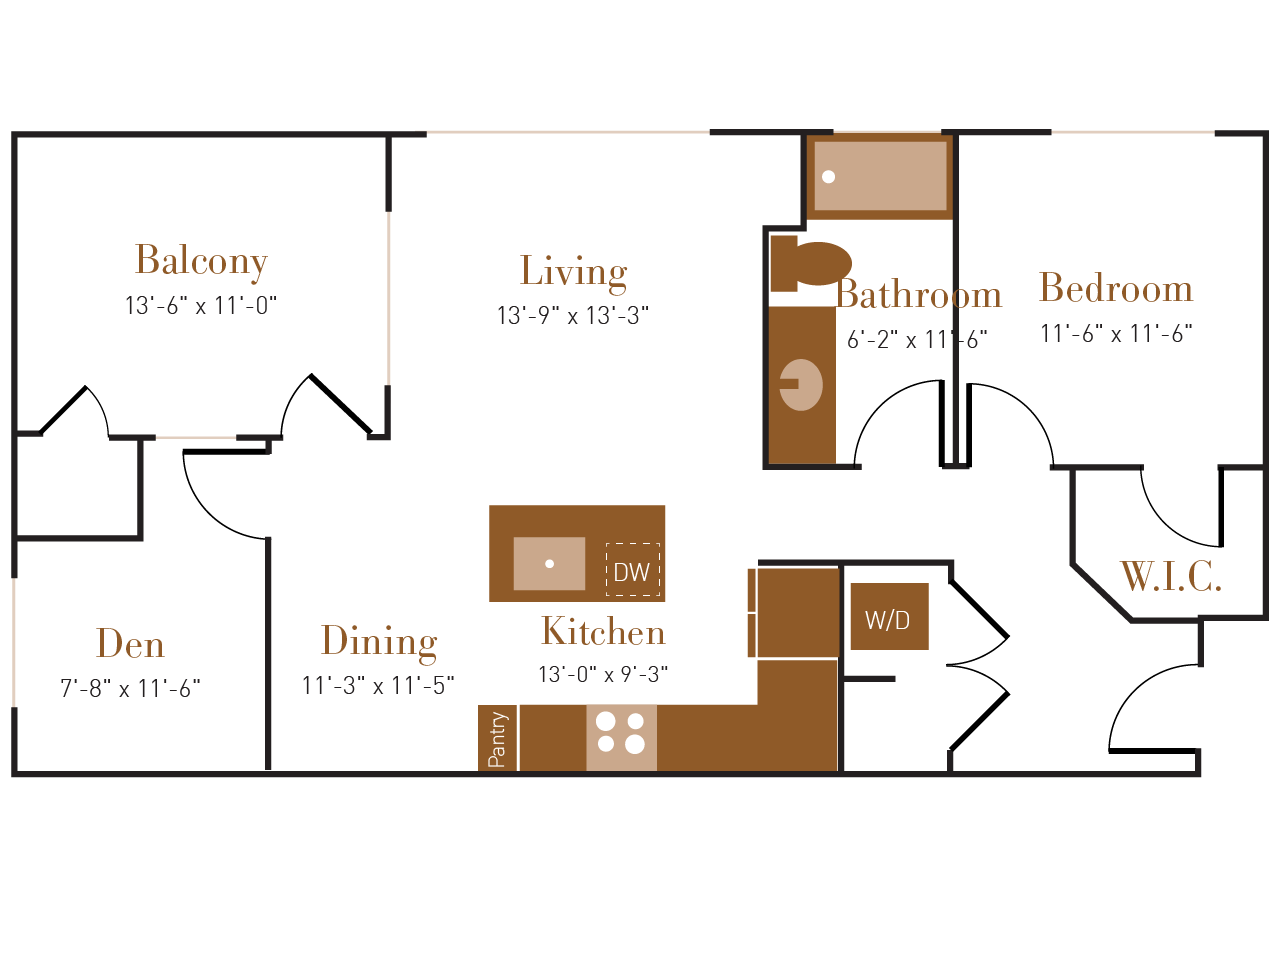 A Four floor plan diagram. One bedroom, one bathroom, an open kitchen dining and living area, a den, a balcony, and a washer dryer.